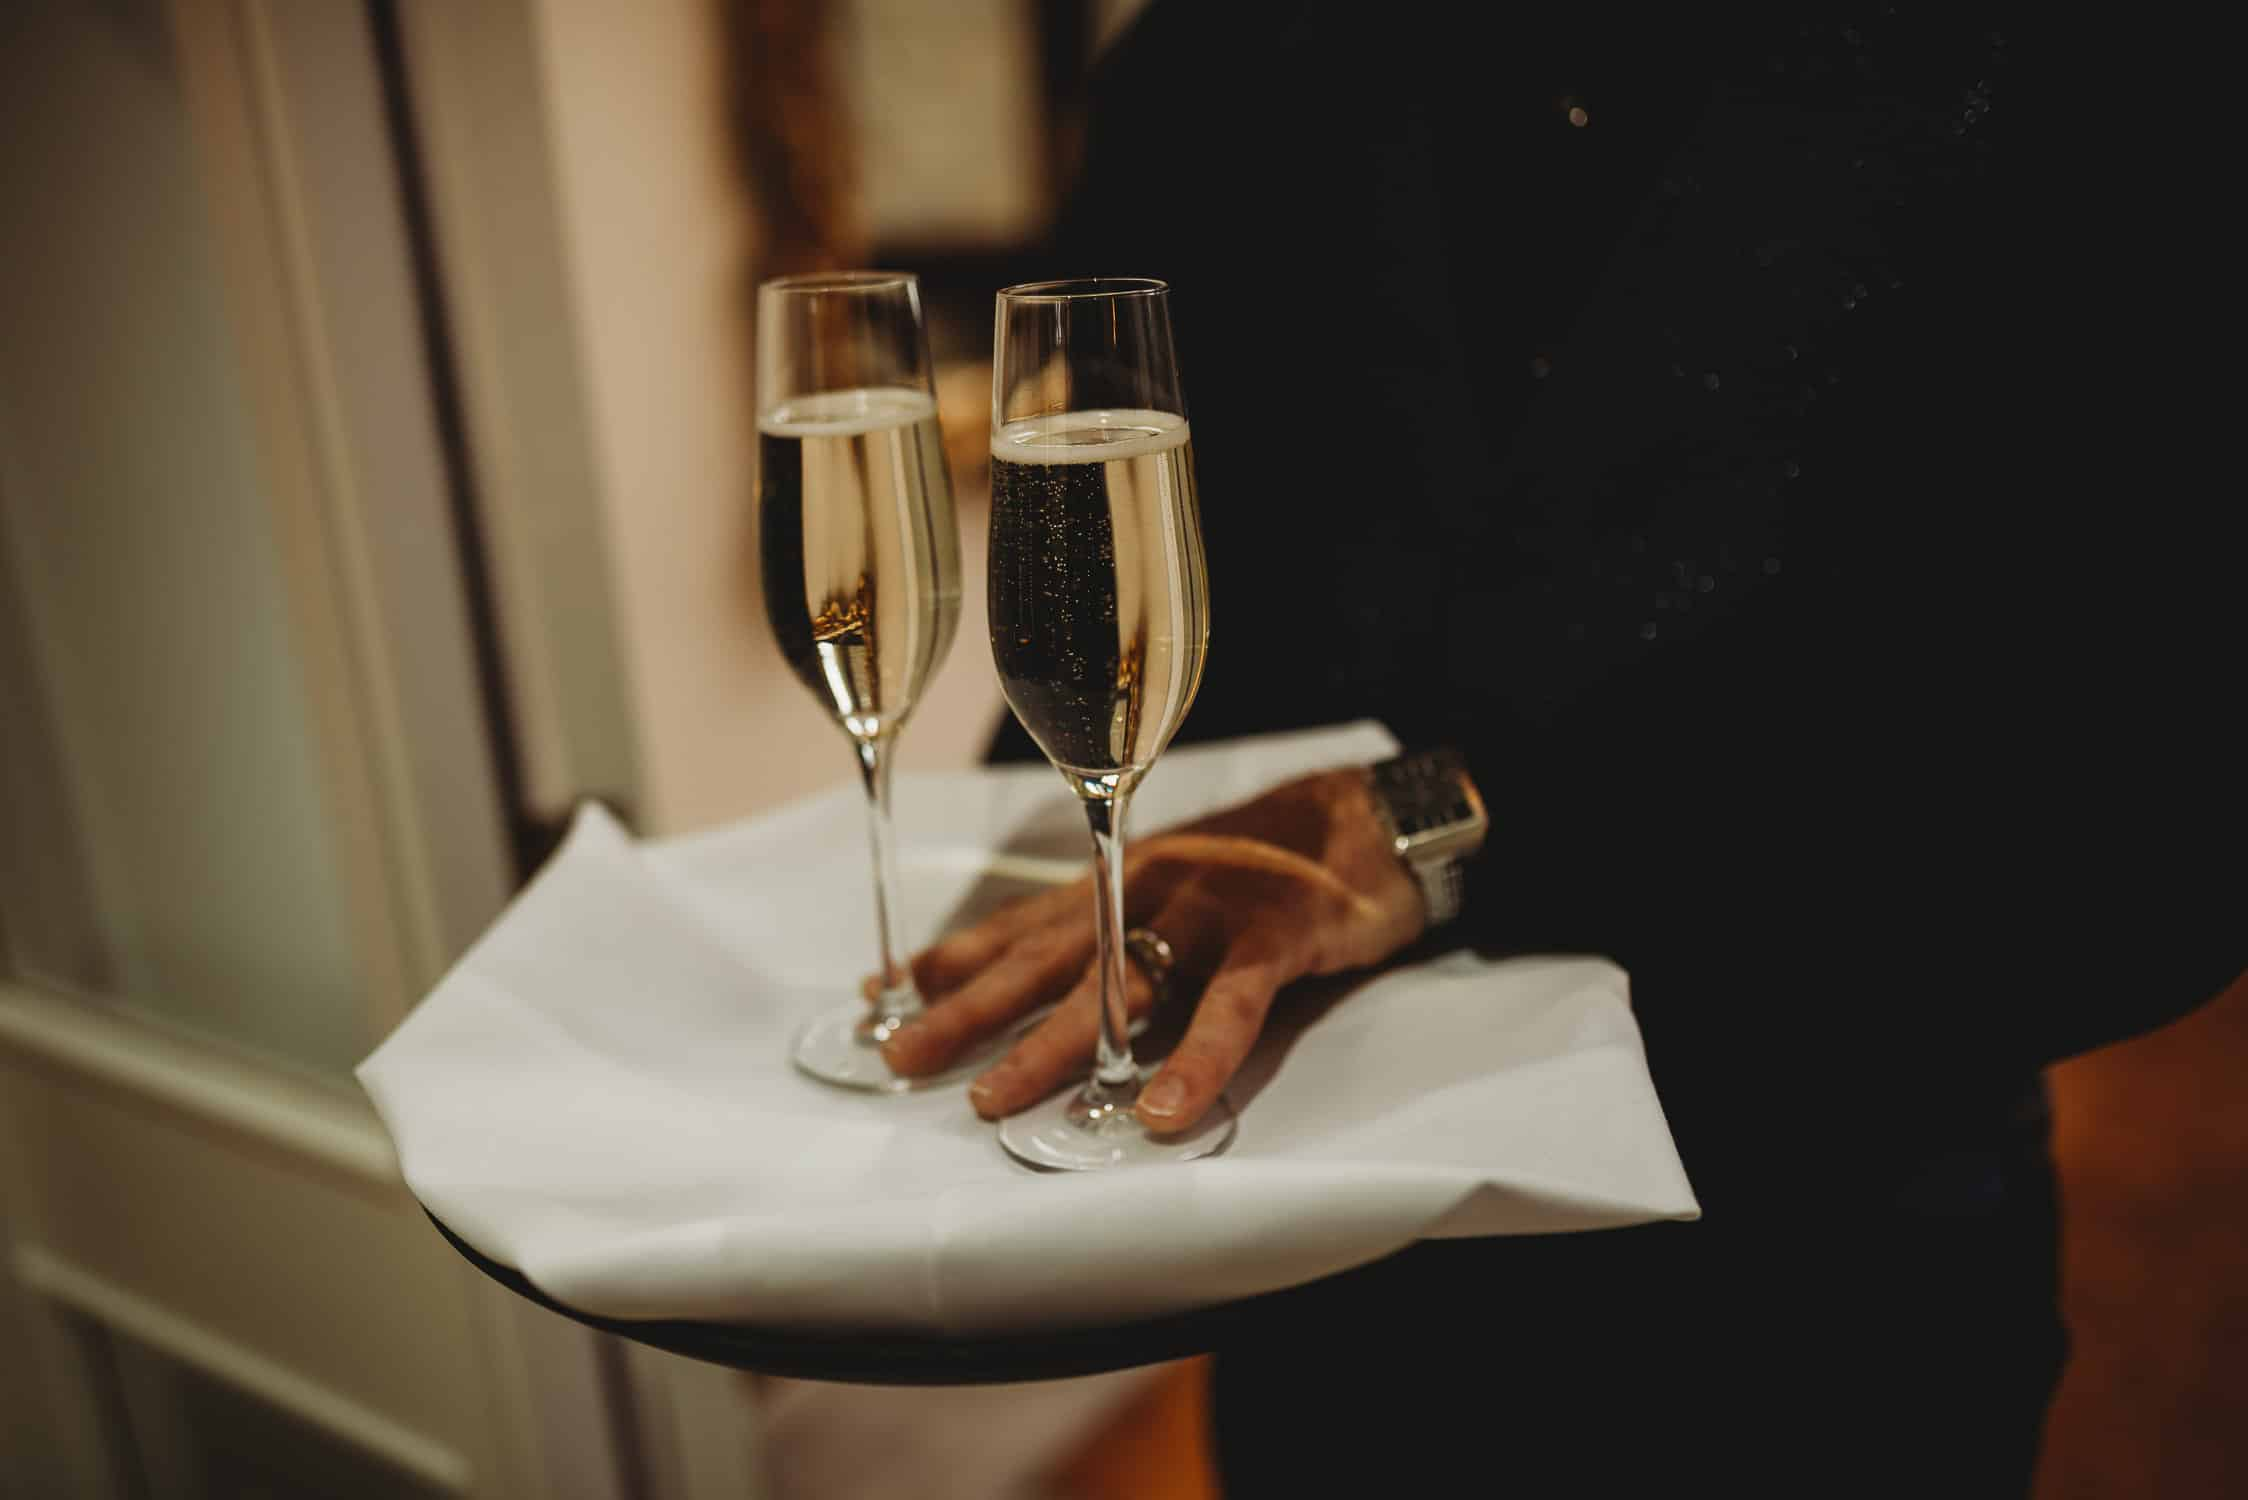 close-up of two glasses of champagne on a tray covered by a white napkin